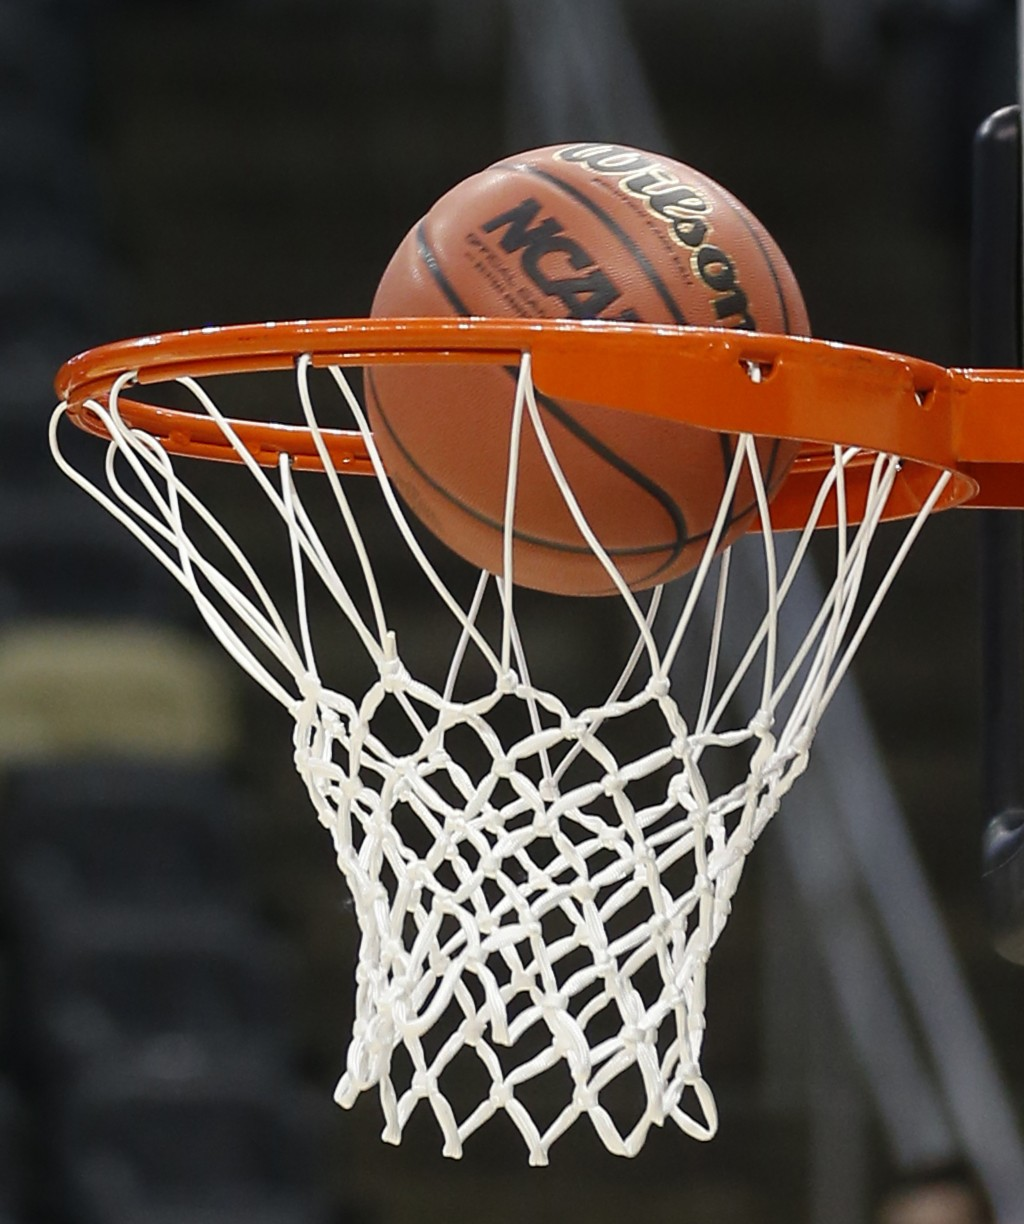 FILE - In this March 18, 2015, file photo, a basketball with the NCAA logo goes in on a shot by Northeastern during practice at the NCAA college baske...